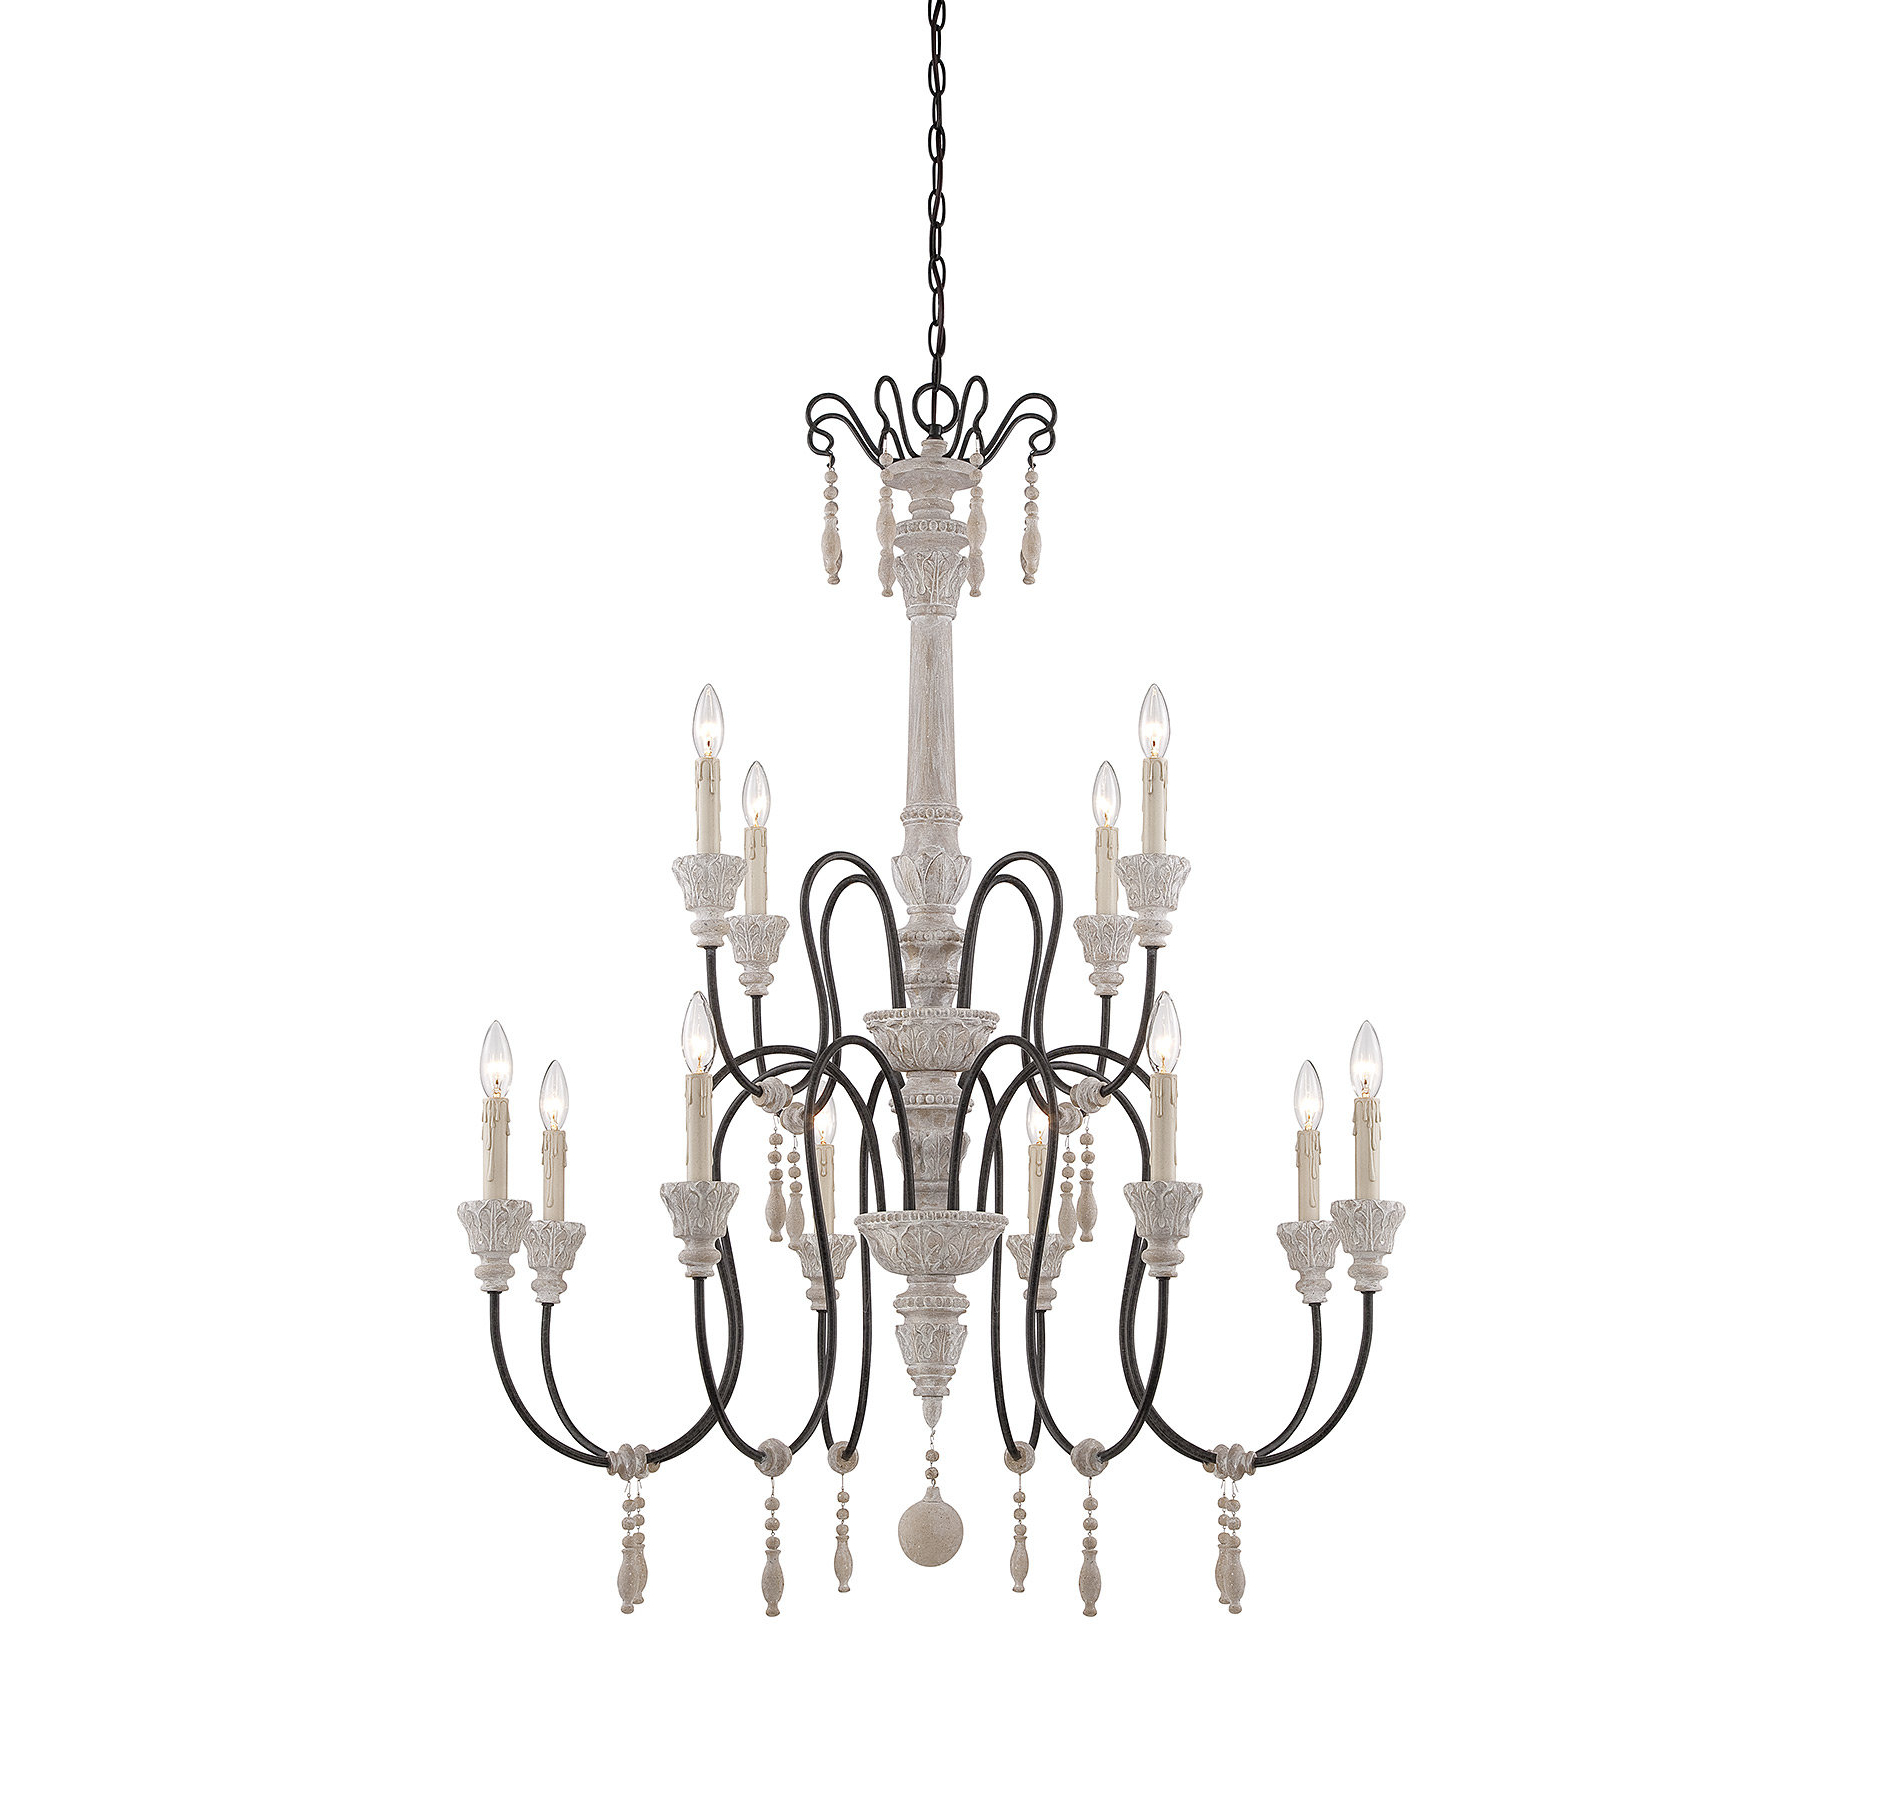 Latest Corneau 5 Light Chandeliers Pertaining To Corneau 12 Light Chandelier & Reviews (View 3 of 20)